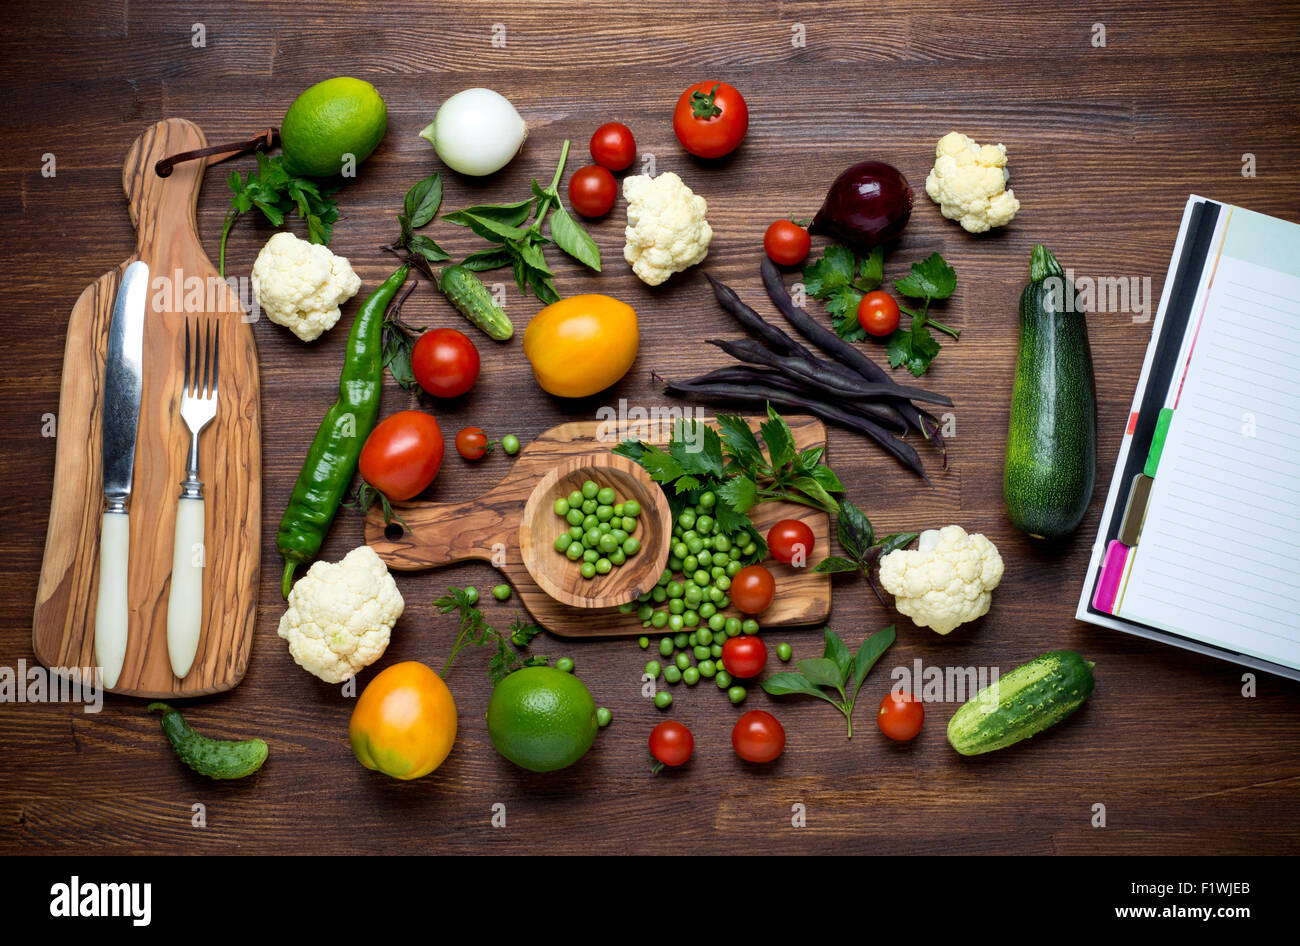 Healthy food herbs and vegetables on wooden table with recipe healthy food herbs and vegetables on wooden table with recipe book top view forumfinder Choice Image